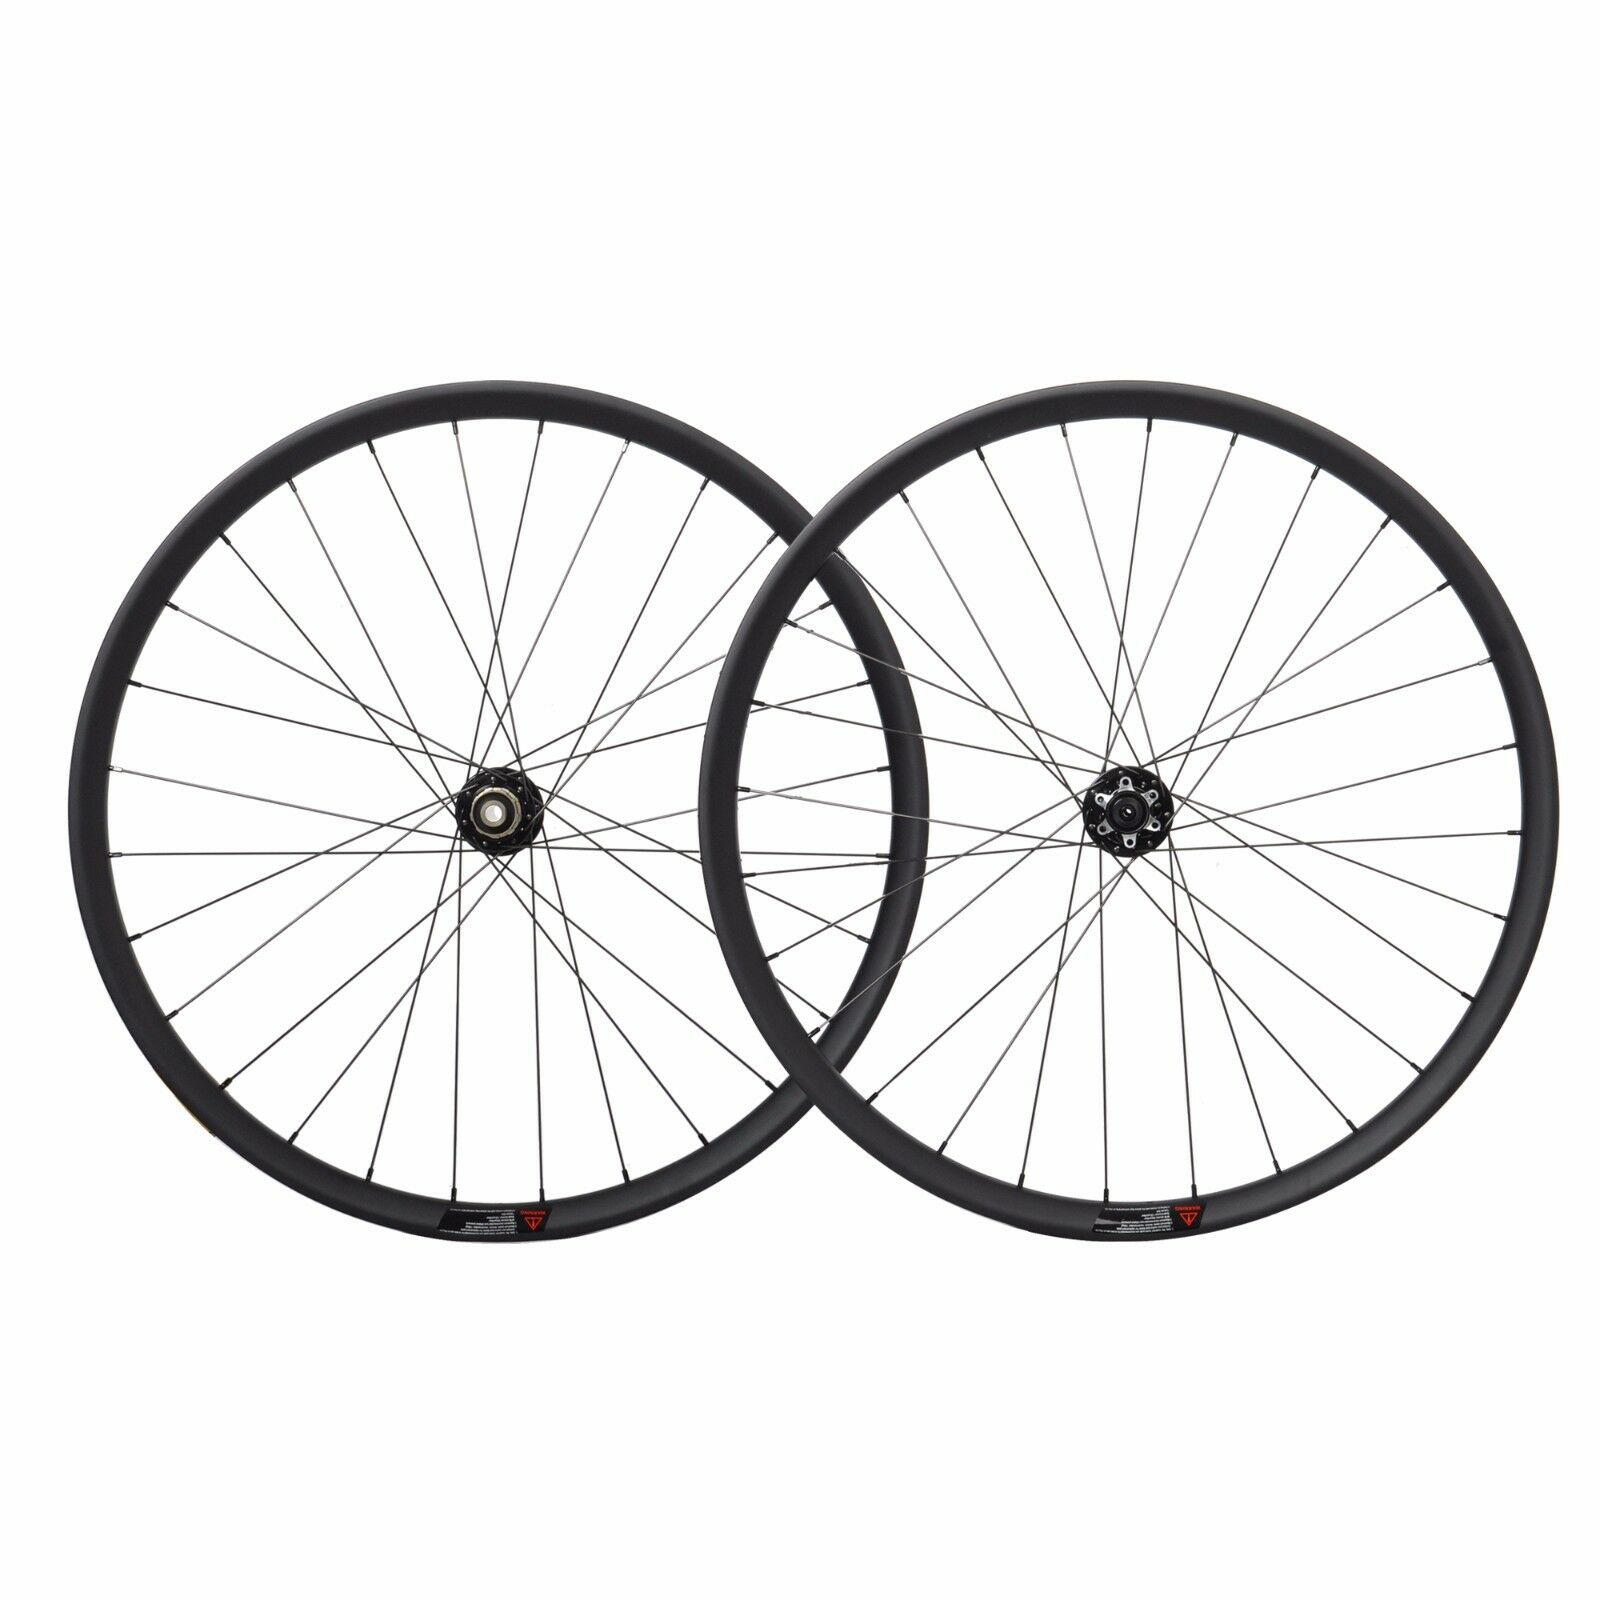 35mm 29er Carbon  MTB Wheelset Novatec UD Matt Clincher Disc brake Tubeless Rim  more affordable